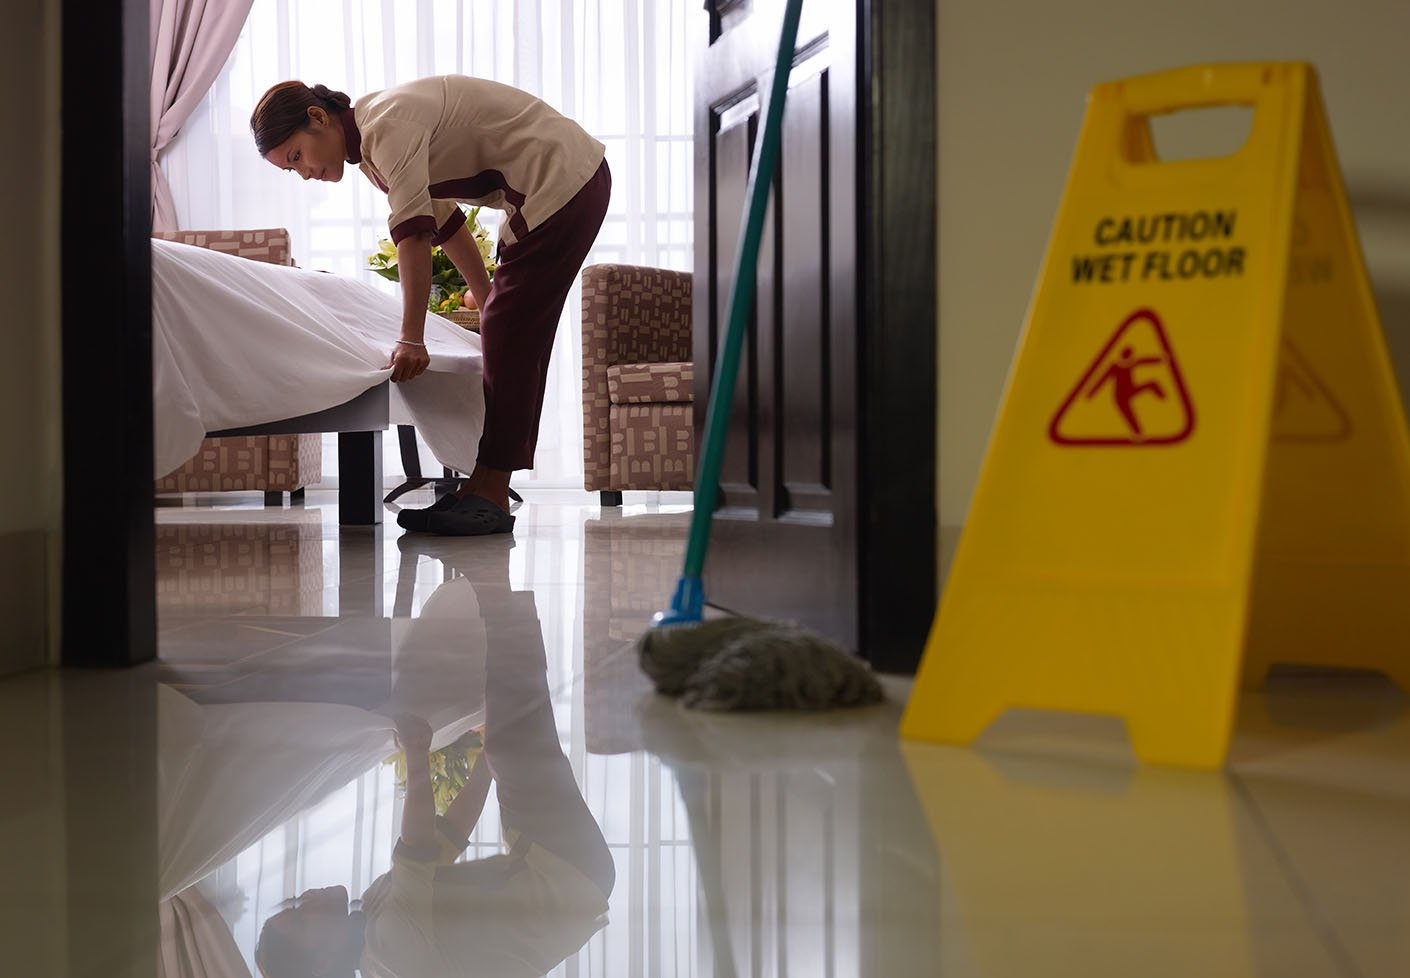 The impact of cleaning protocols on the hospitality industry